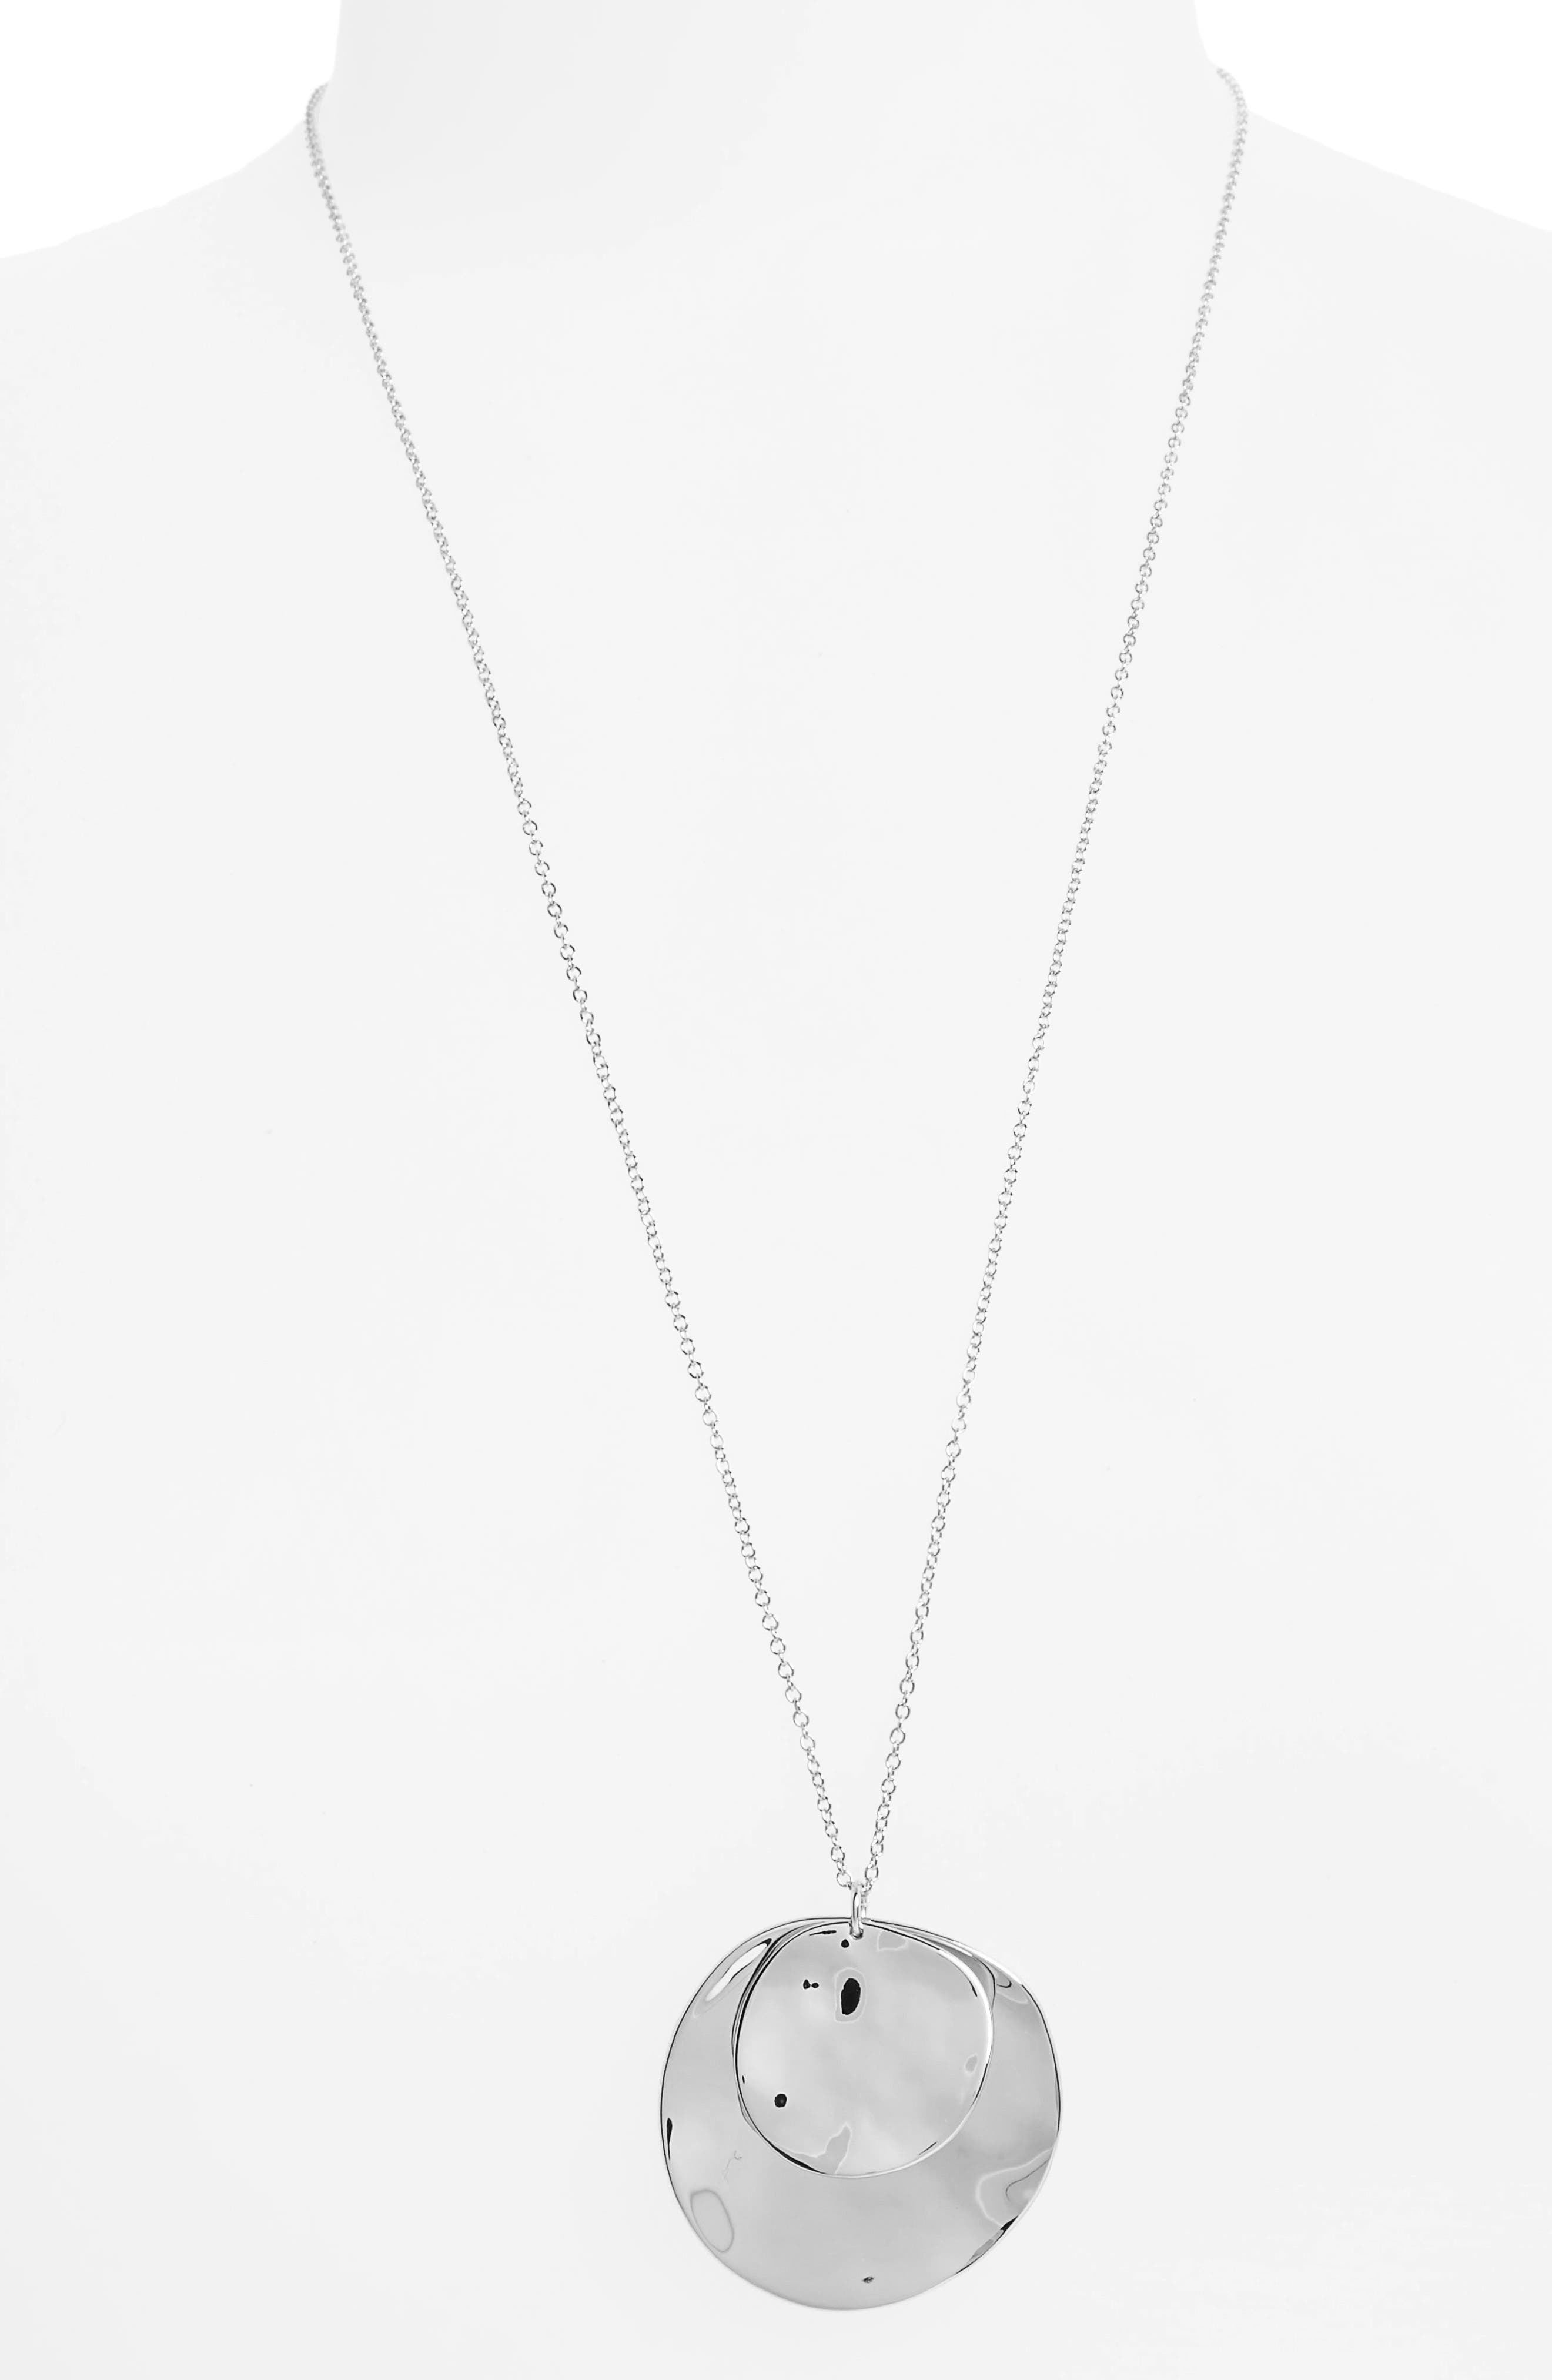 Chloe Long Cluster Pendant Necklace,                         Main,                         color, SILVER